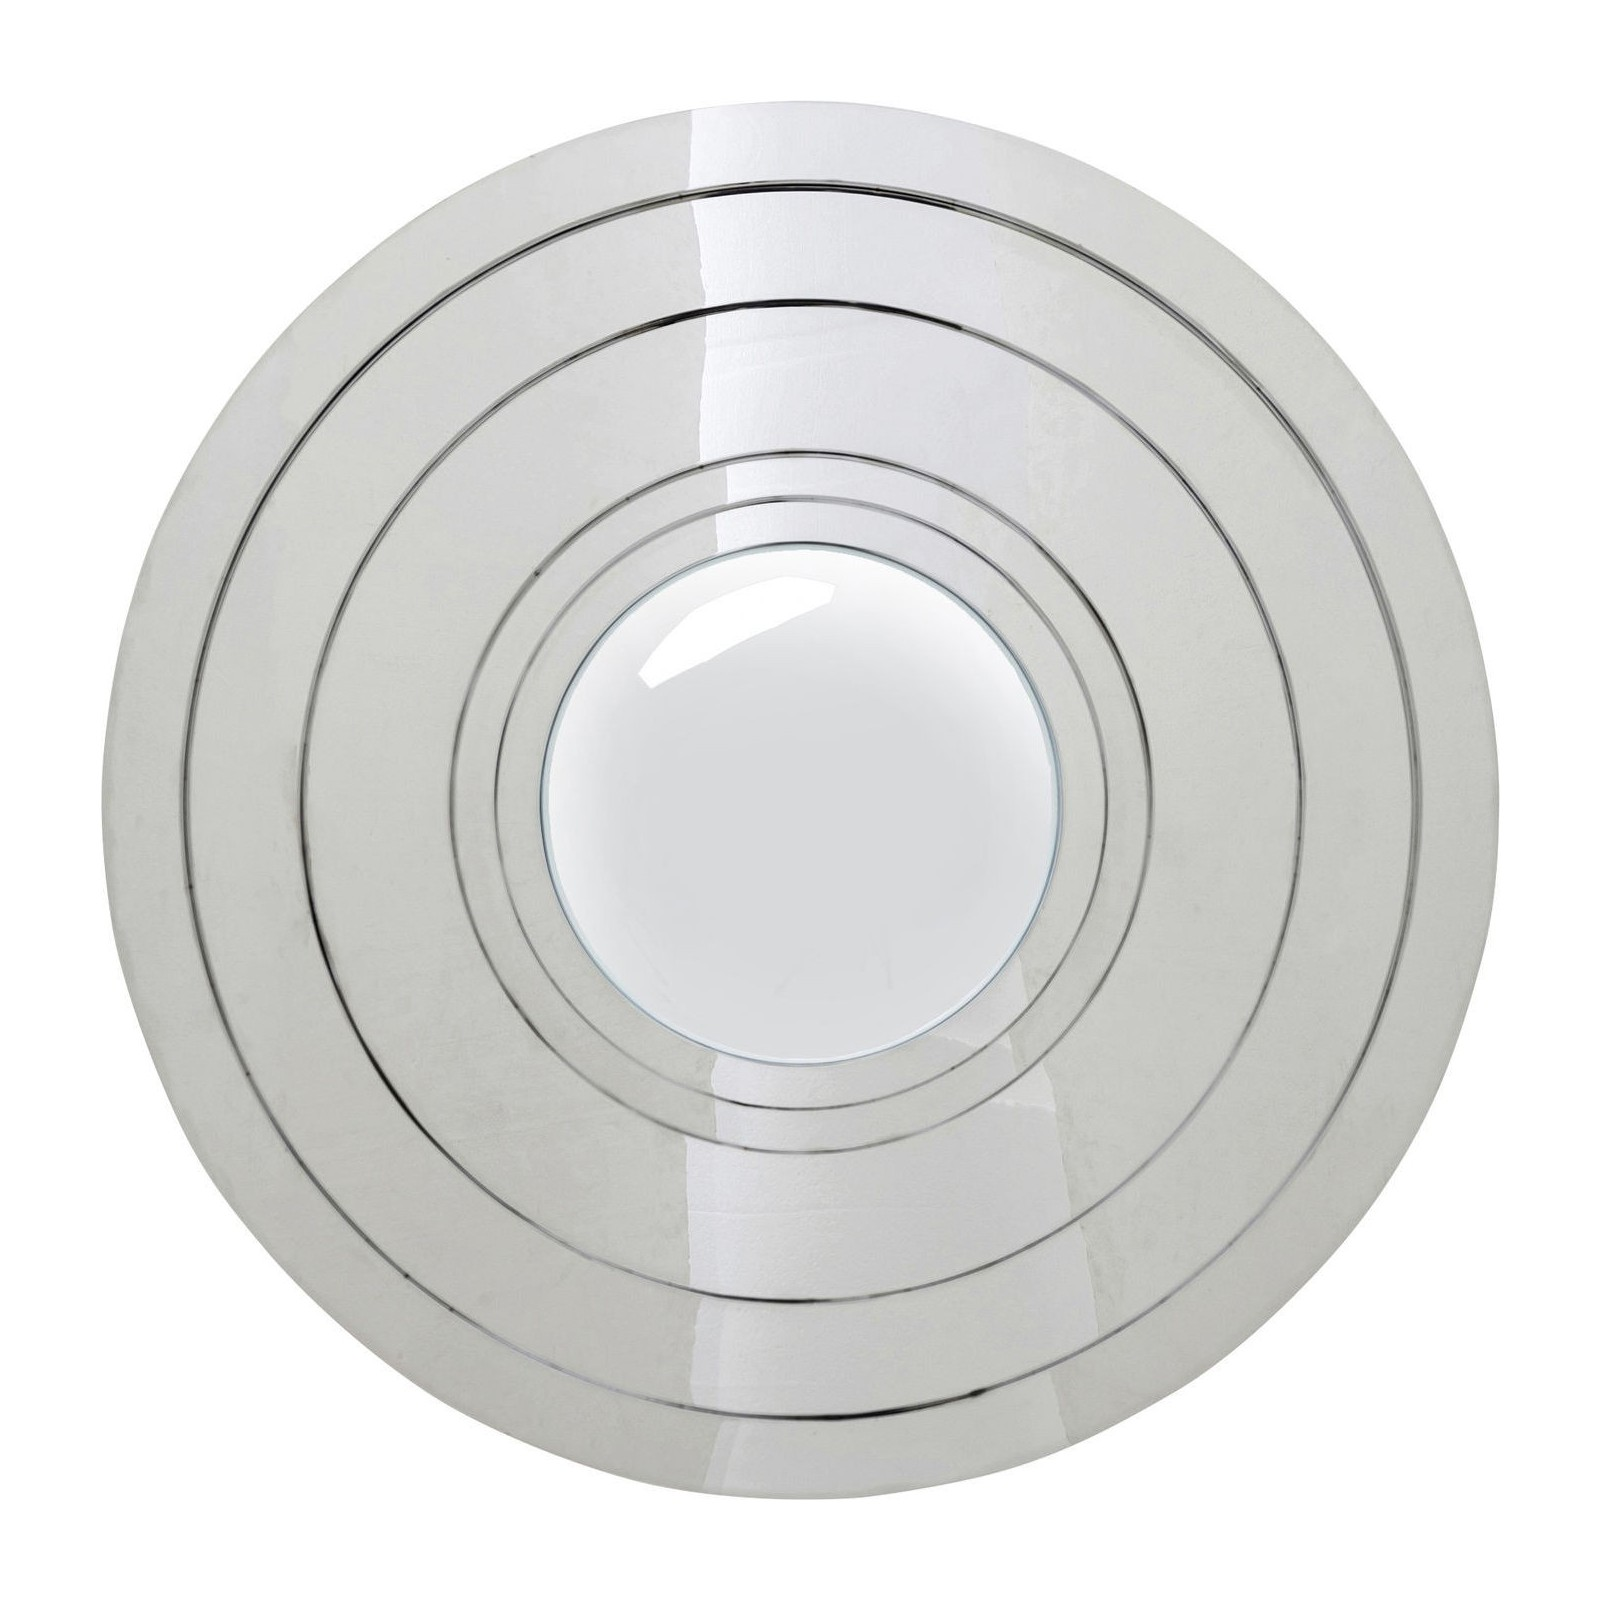 Miroir steel step argent rond 80 cm kare design for Miroir rond design